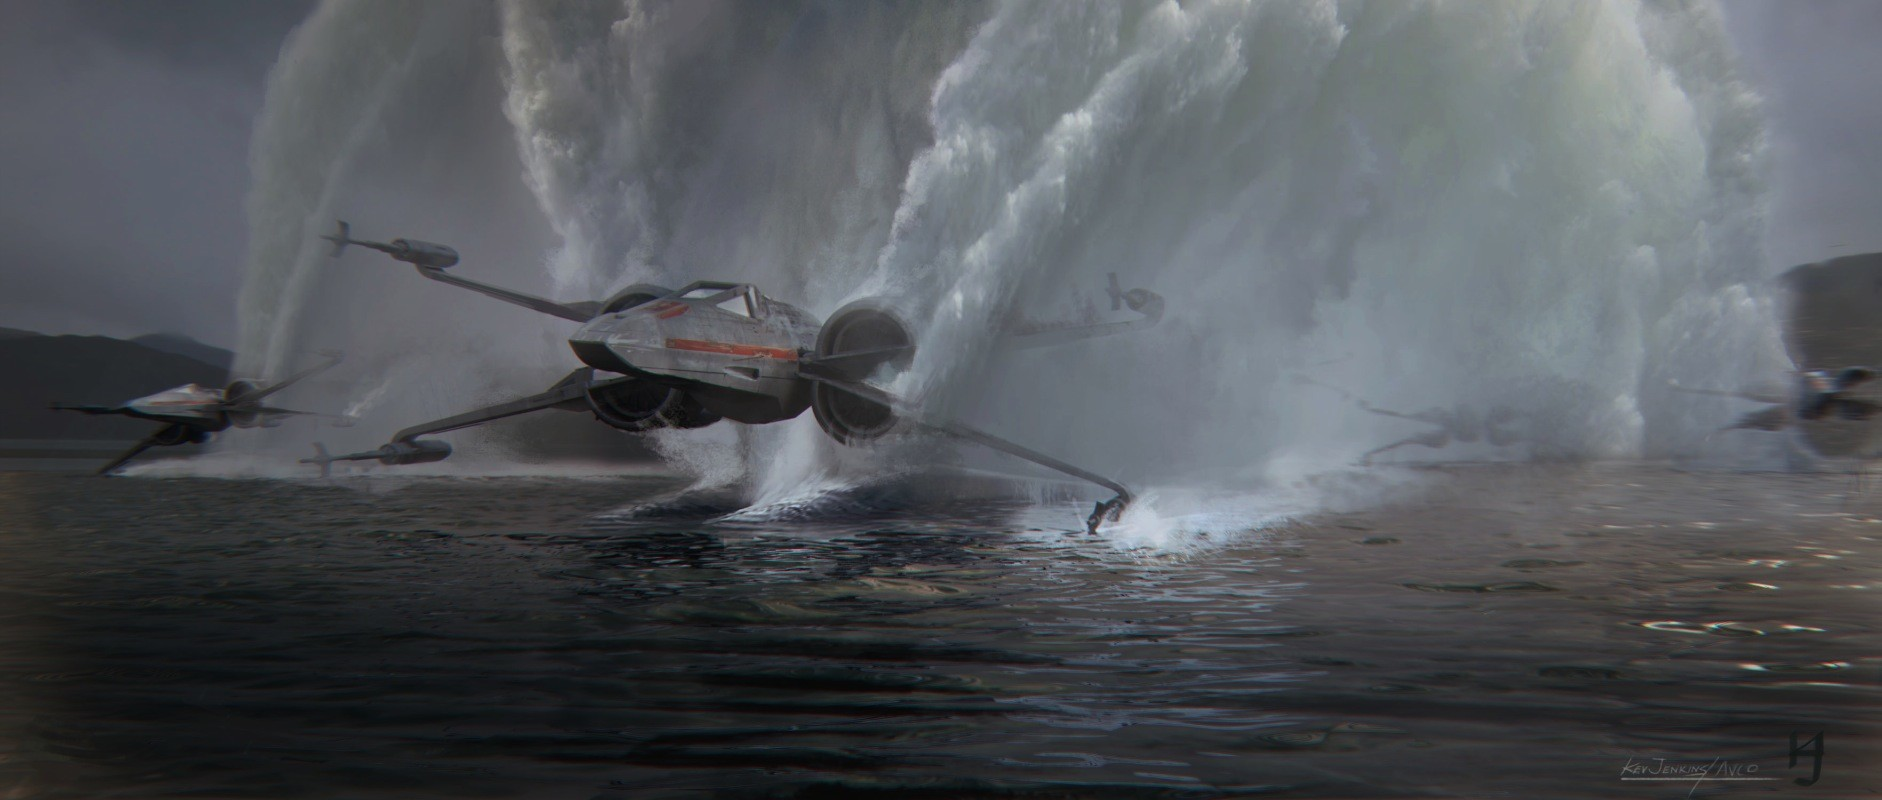 Star Wars: The Force Awakens Concept Art by Kevin Jenkins